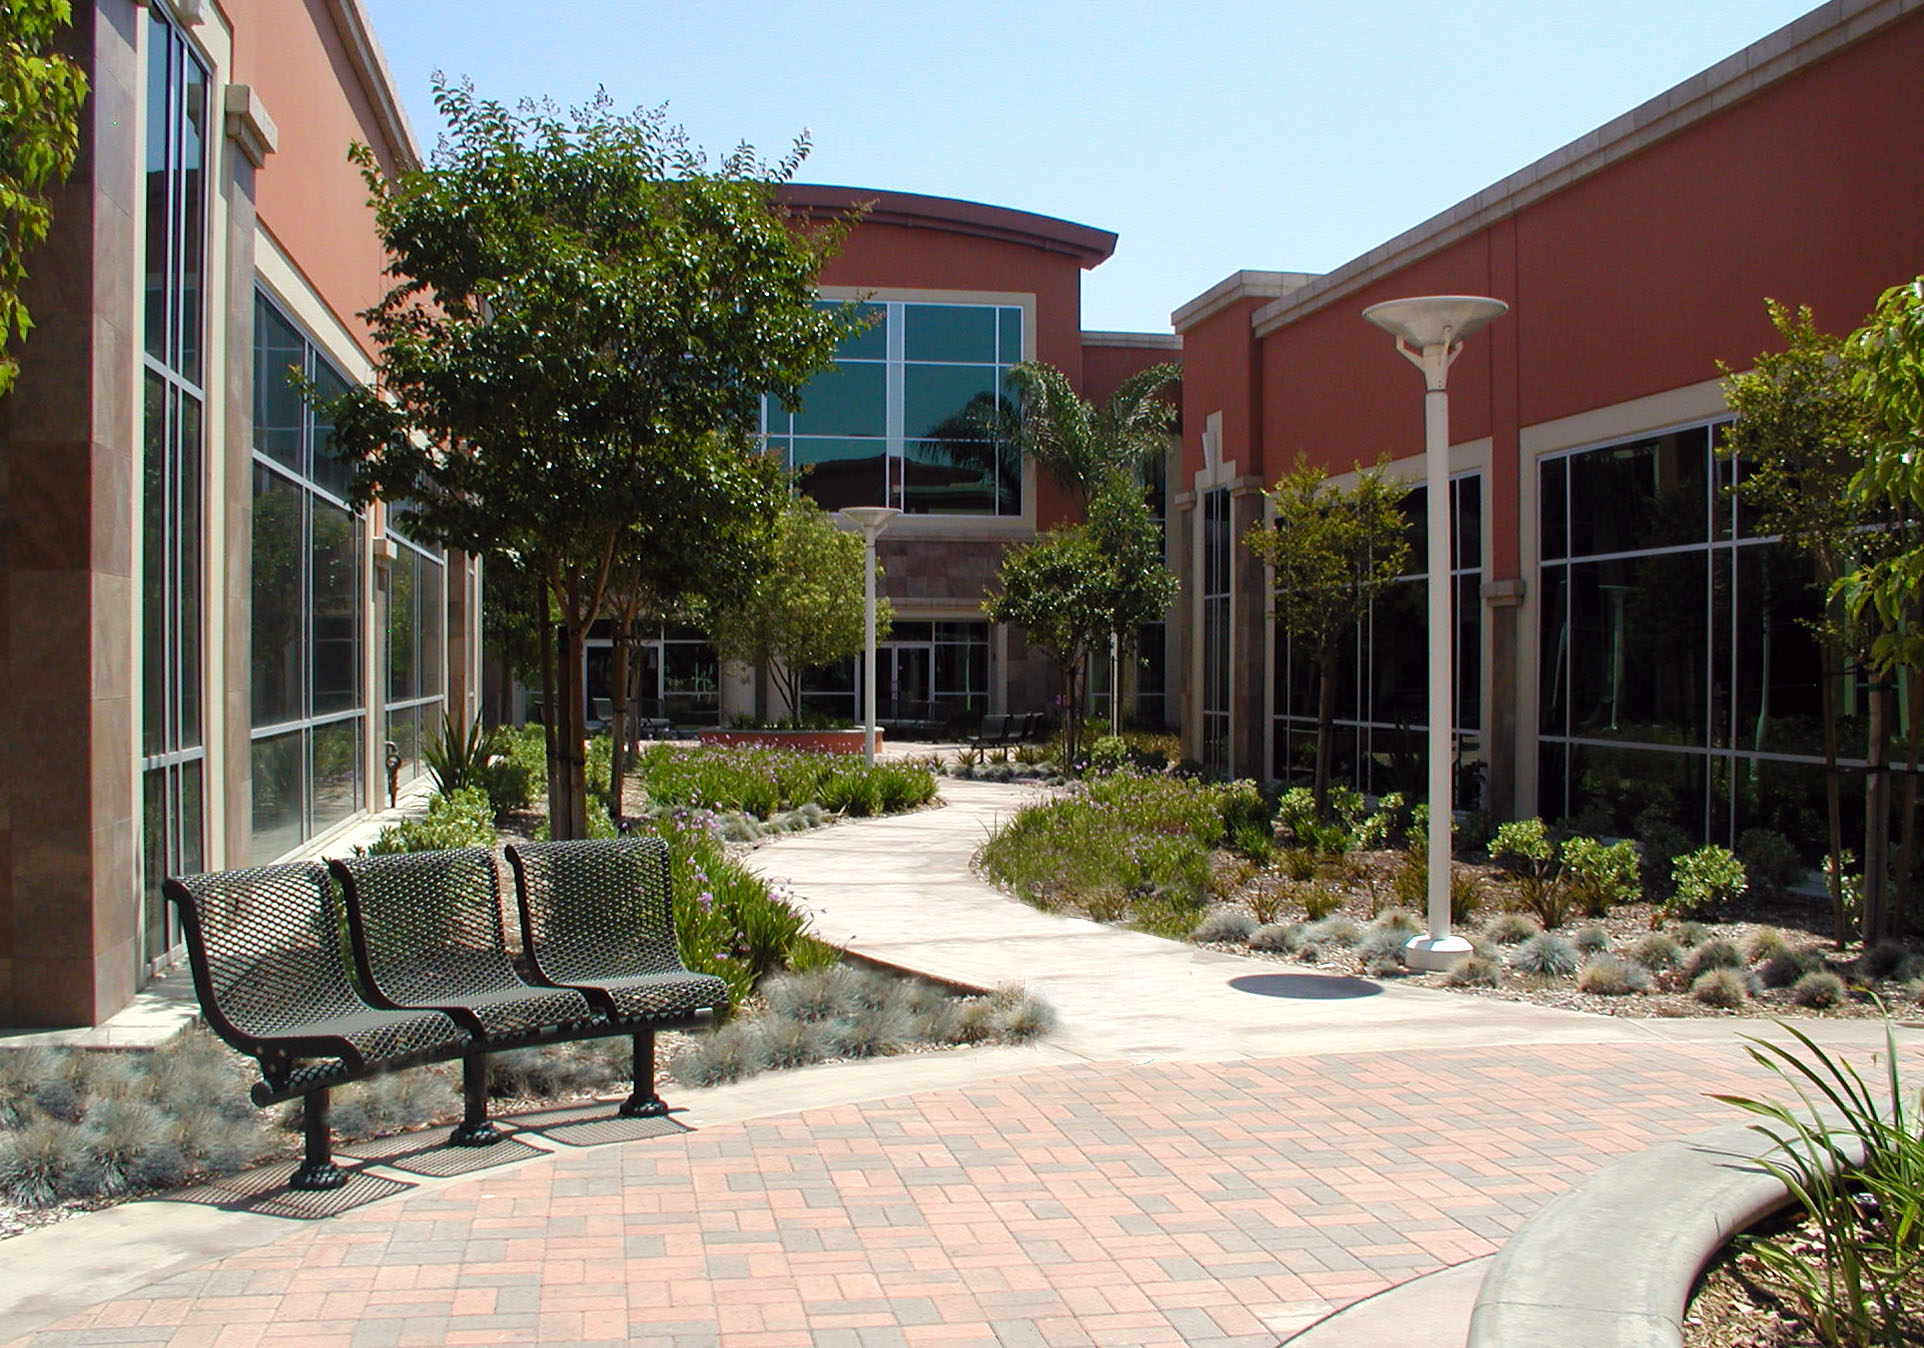 2-haven-business-center-rancho-cucamonga-landscape